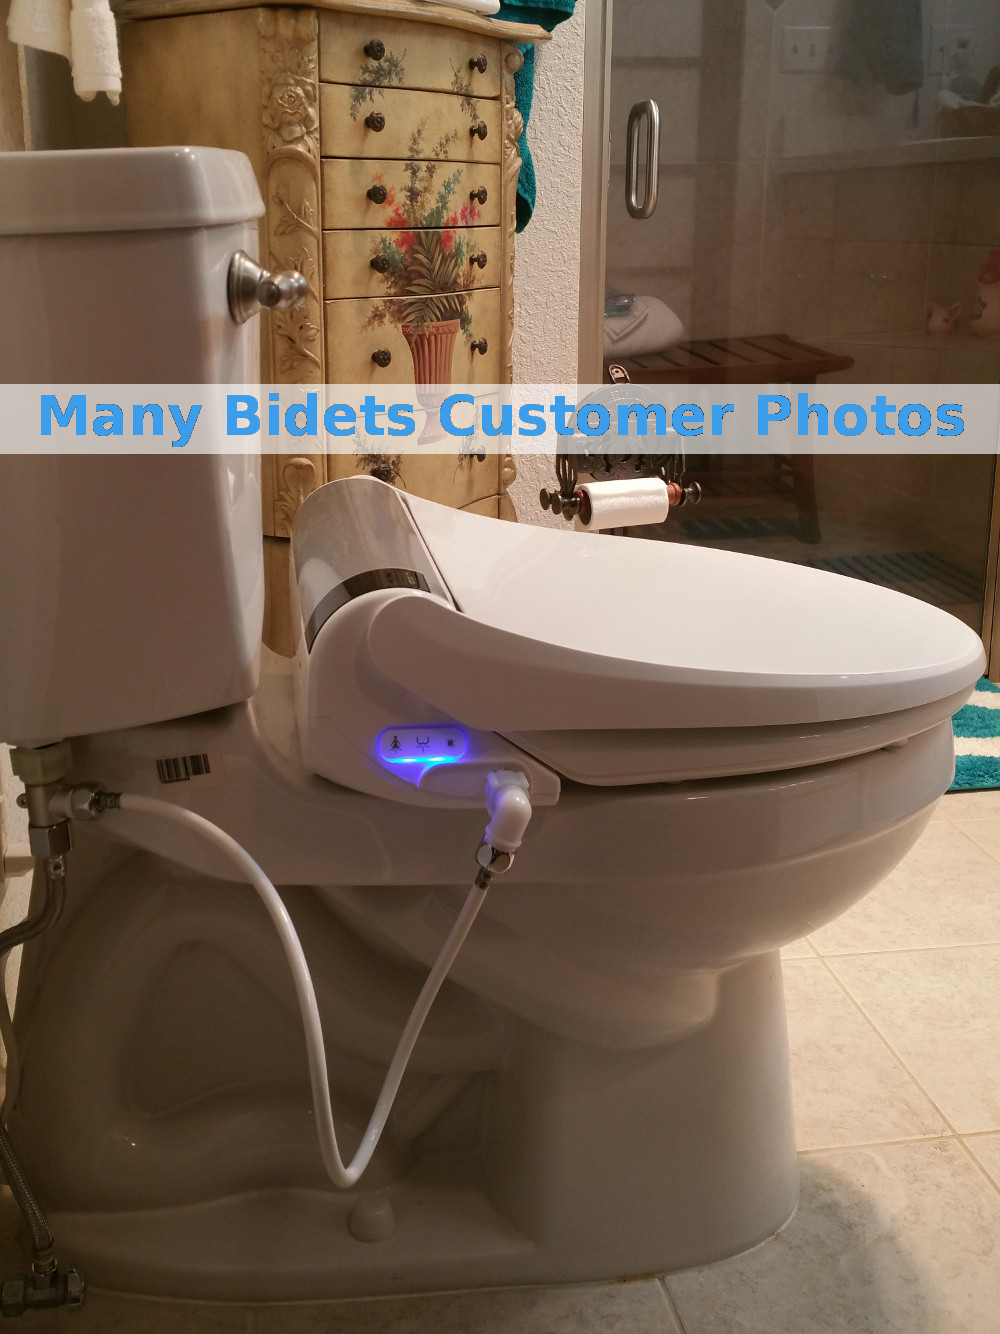 Bio Bidet Bliss Bb 2000 Bidet Seat Customer Photo Gallery Real Pictures From Real Customers